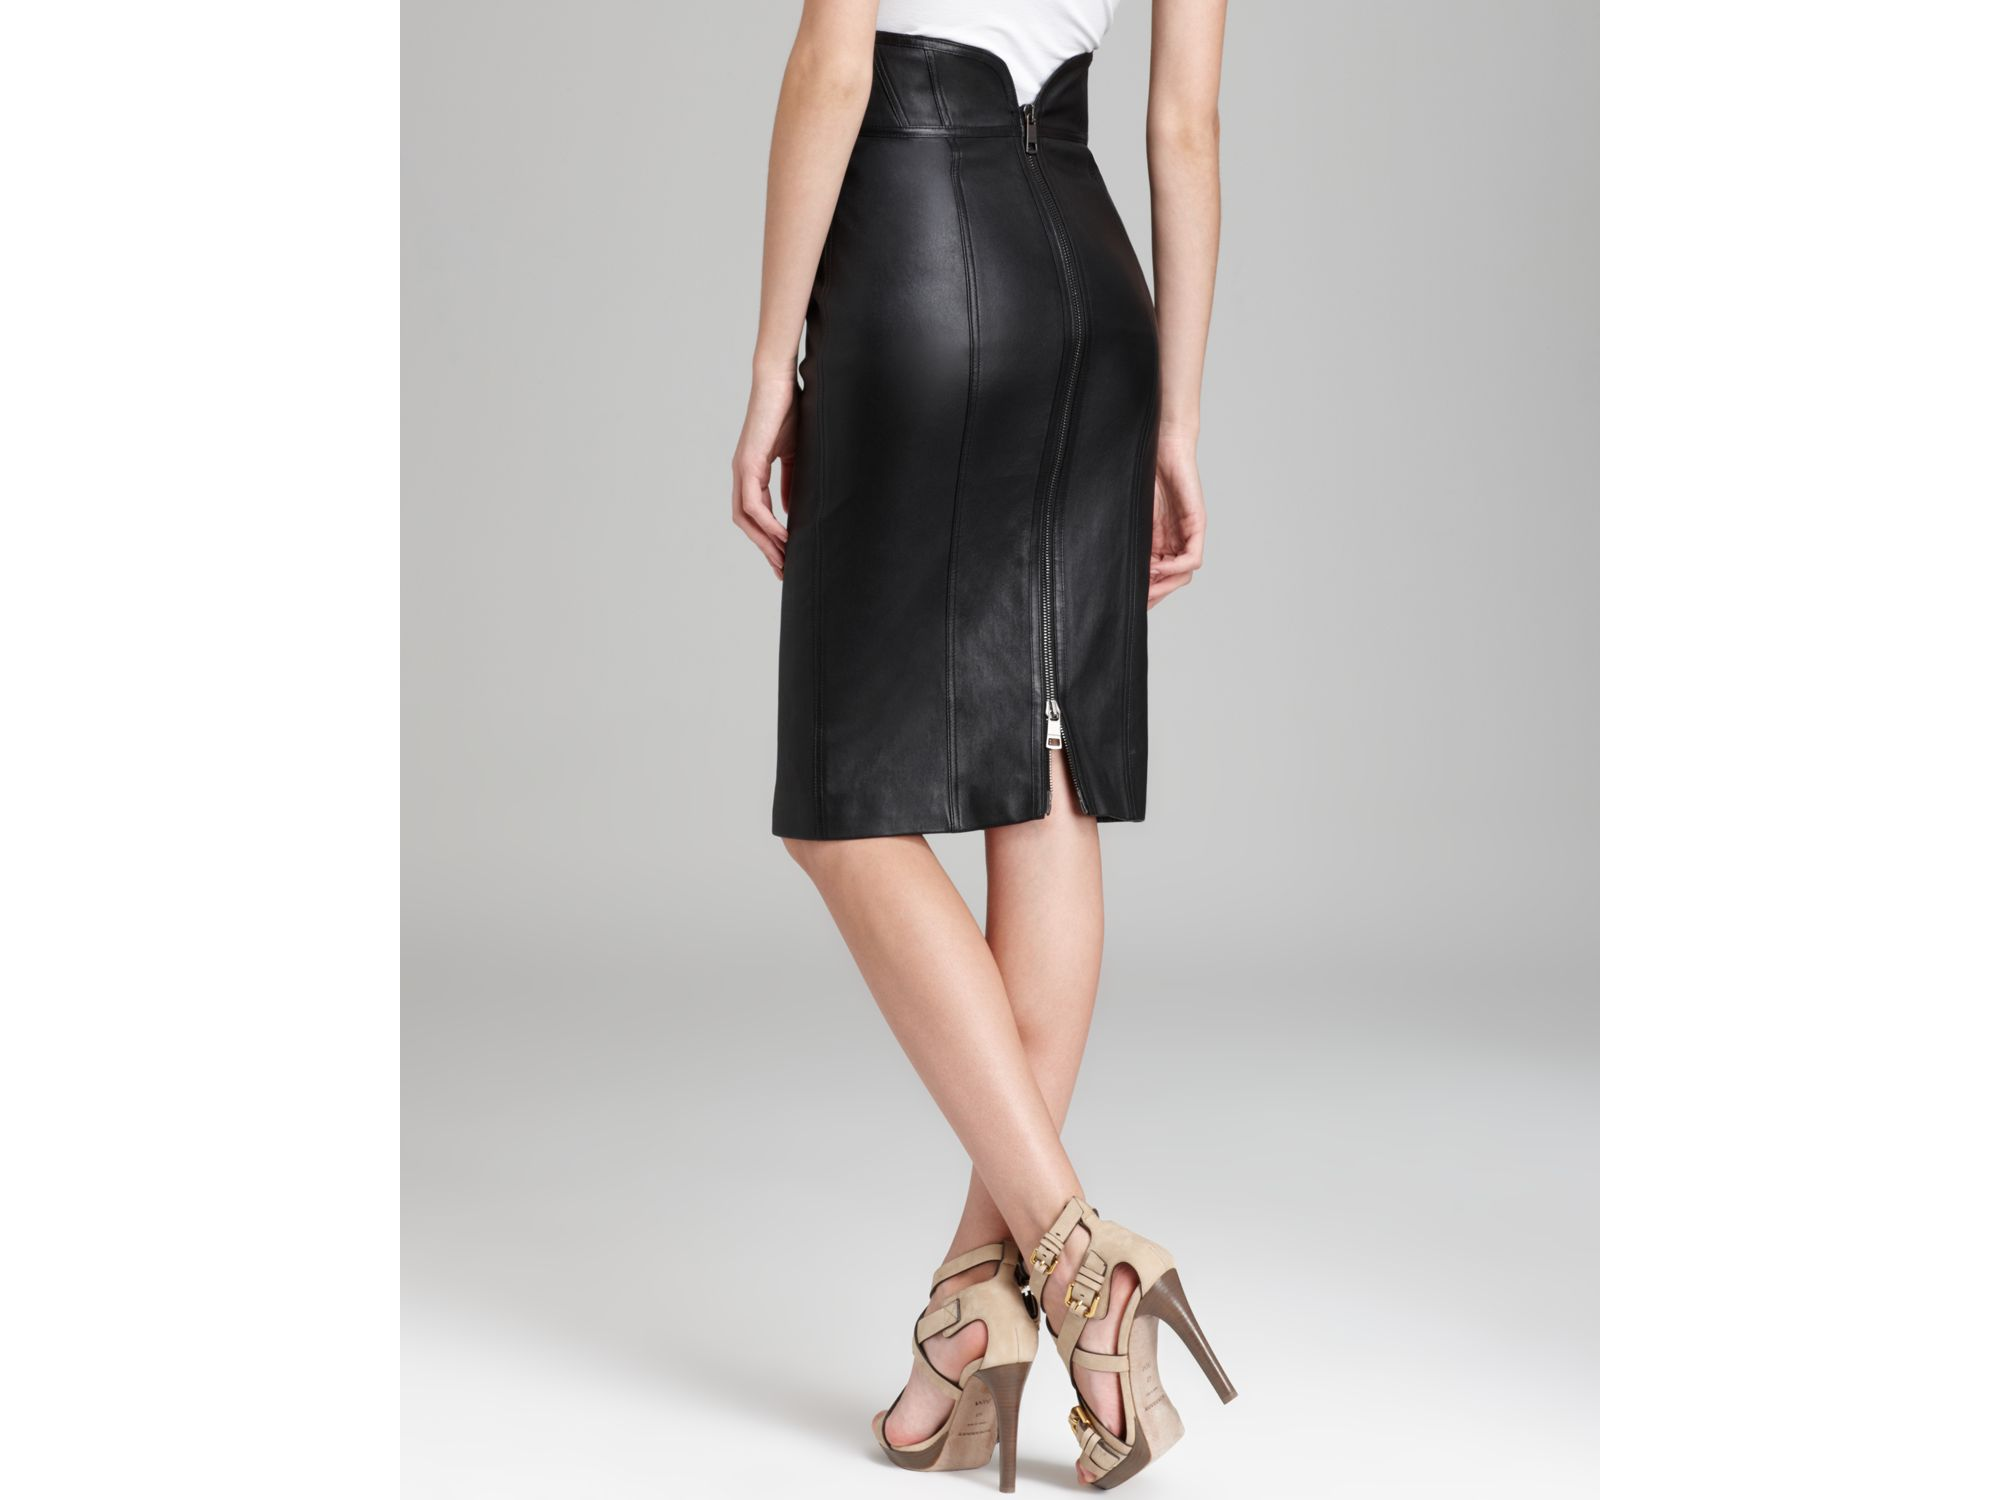 High Waisted Leather Pencil Skirt - Redskirtz